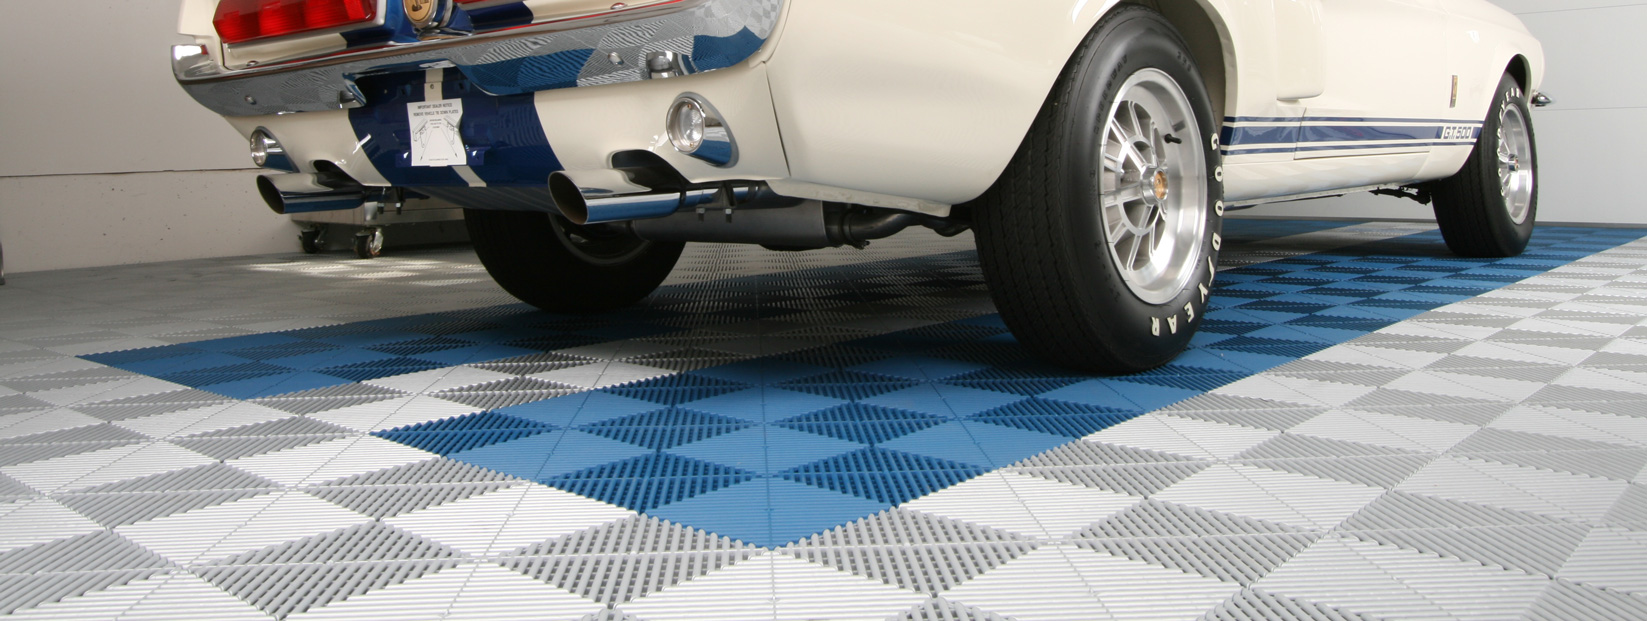 Garage Flooring Tiles Baltimore